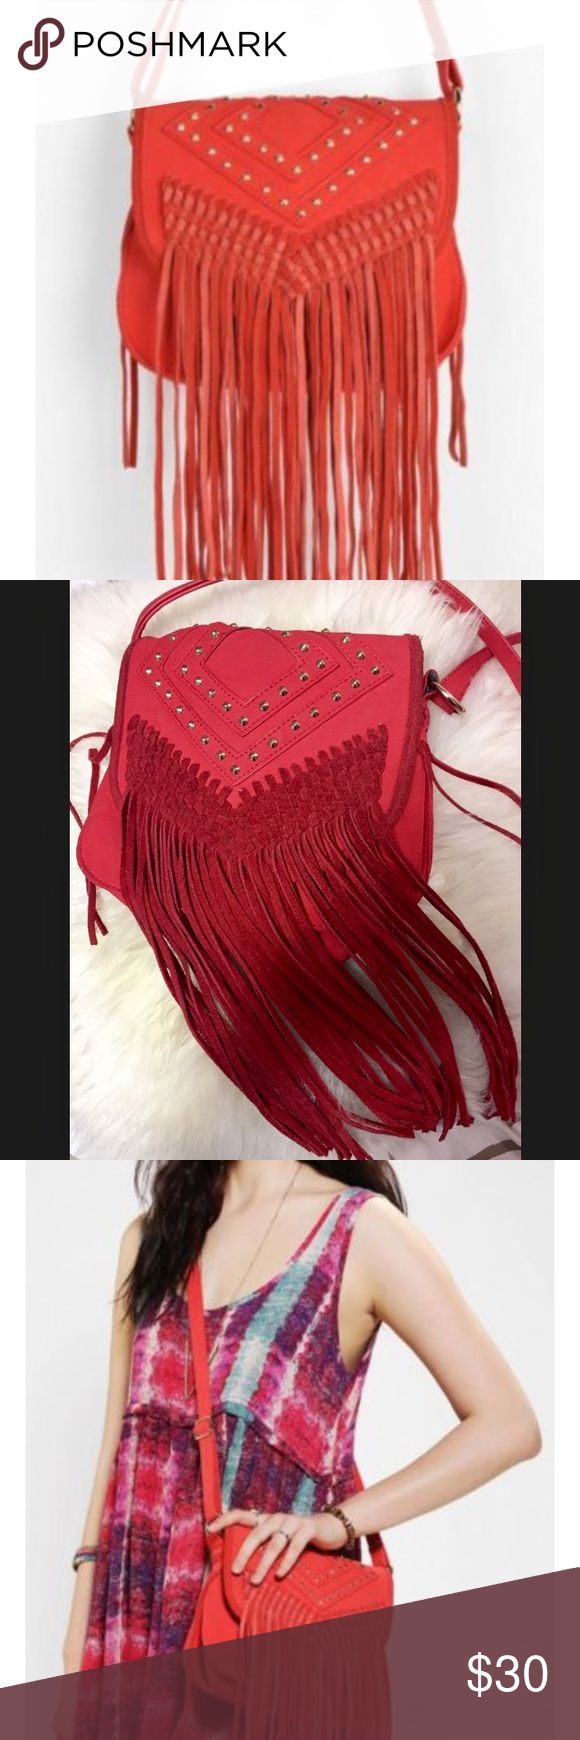 Deena & Ozzy red fringe bag Very stylish red fringe bag! Deena & Ozzy Bags Crossbody Bags